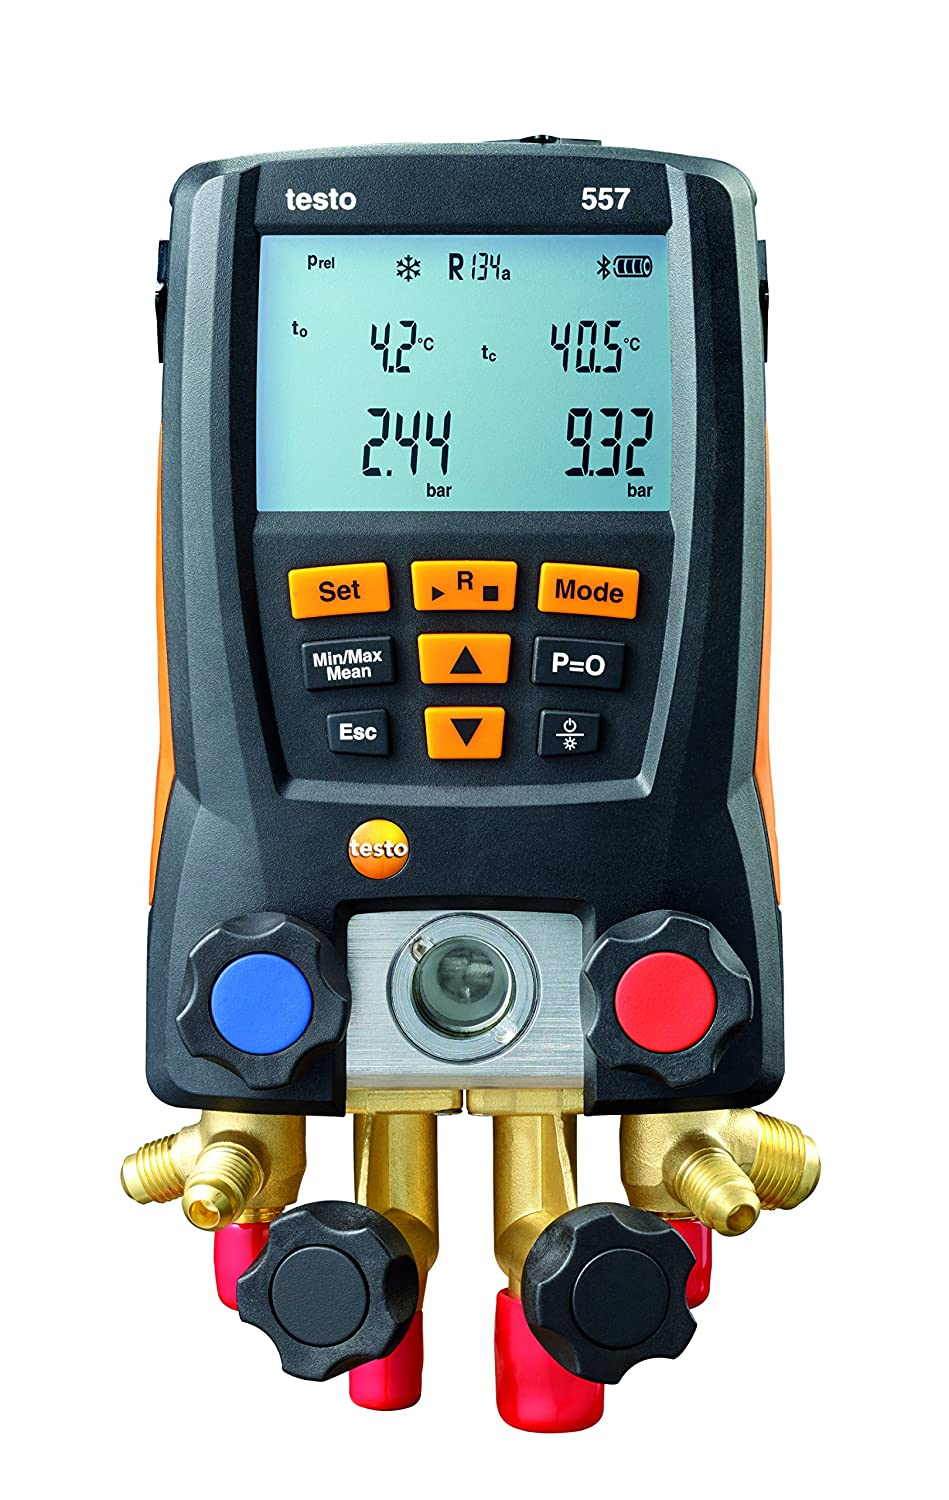 "Testo 0563 1557 557 4 Way Valve Digital Manifold Meter Kit with Built in Bluetooth, 3"" Height, 5"" Width, 9"" Length"